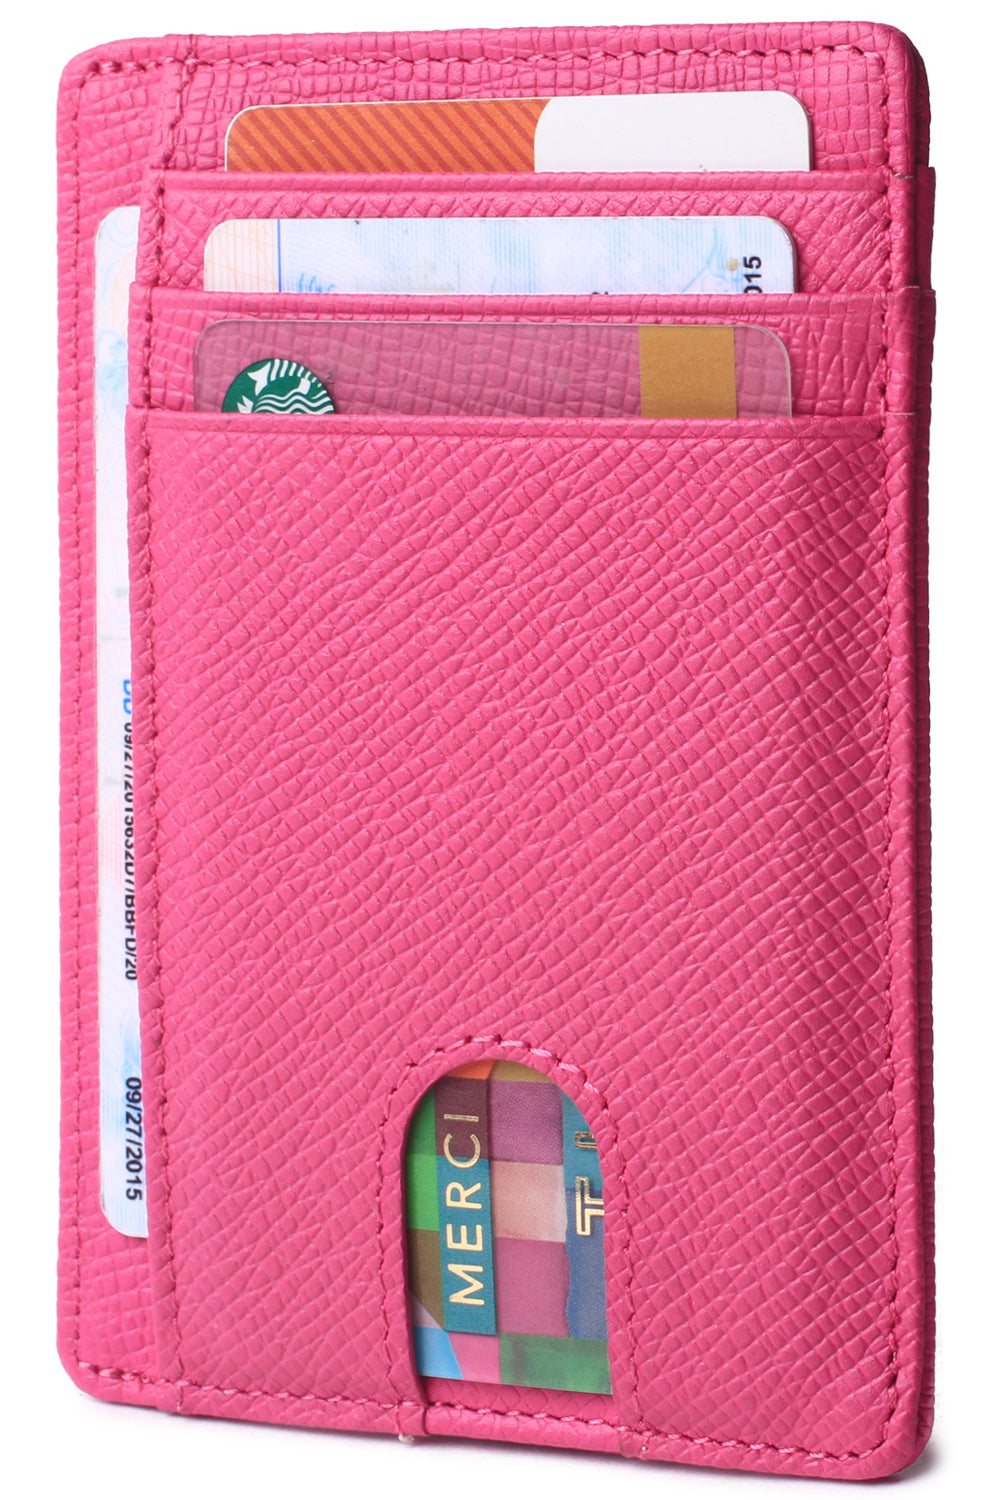 Slim Minimalist Front Pocket RFID Blocking Leather Wallets for Men & Women BG2288 Cross Rose - Borgasets